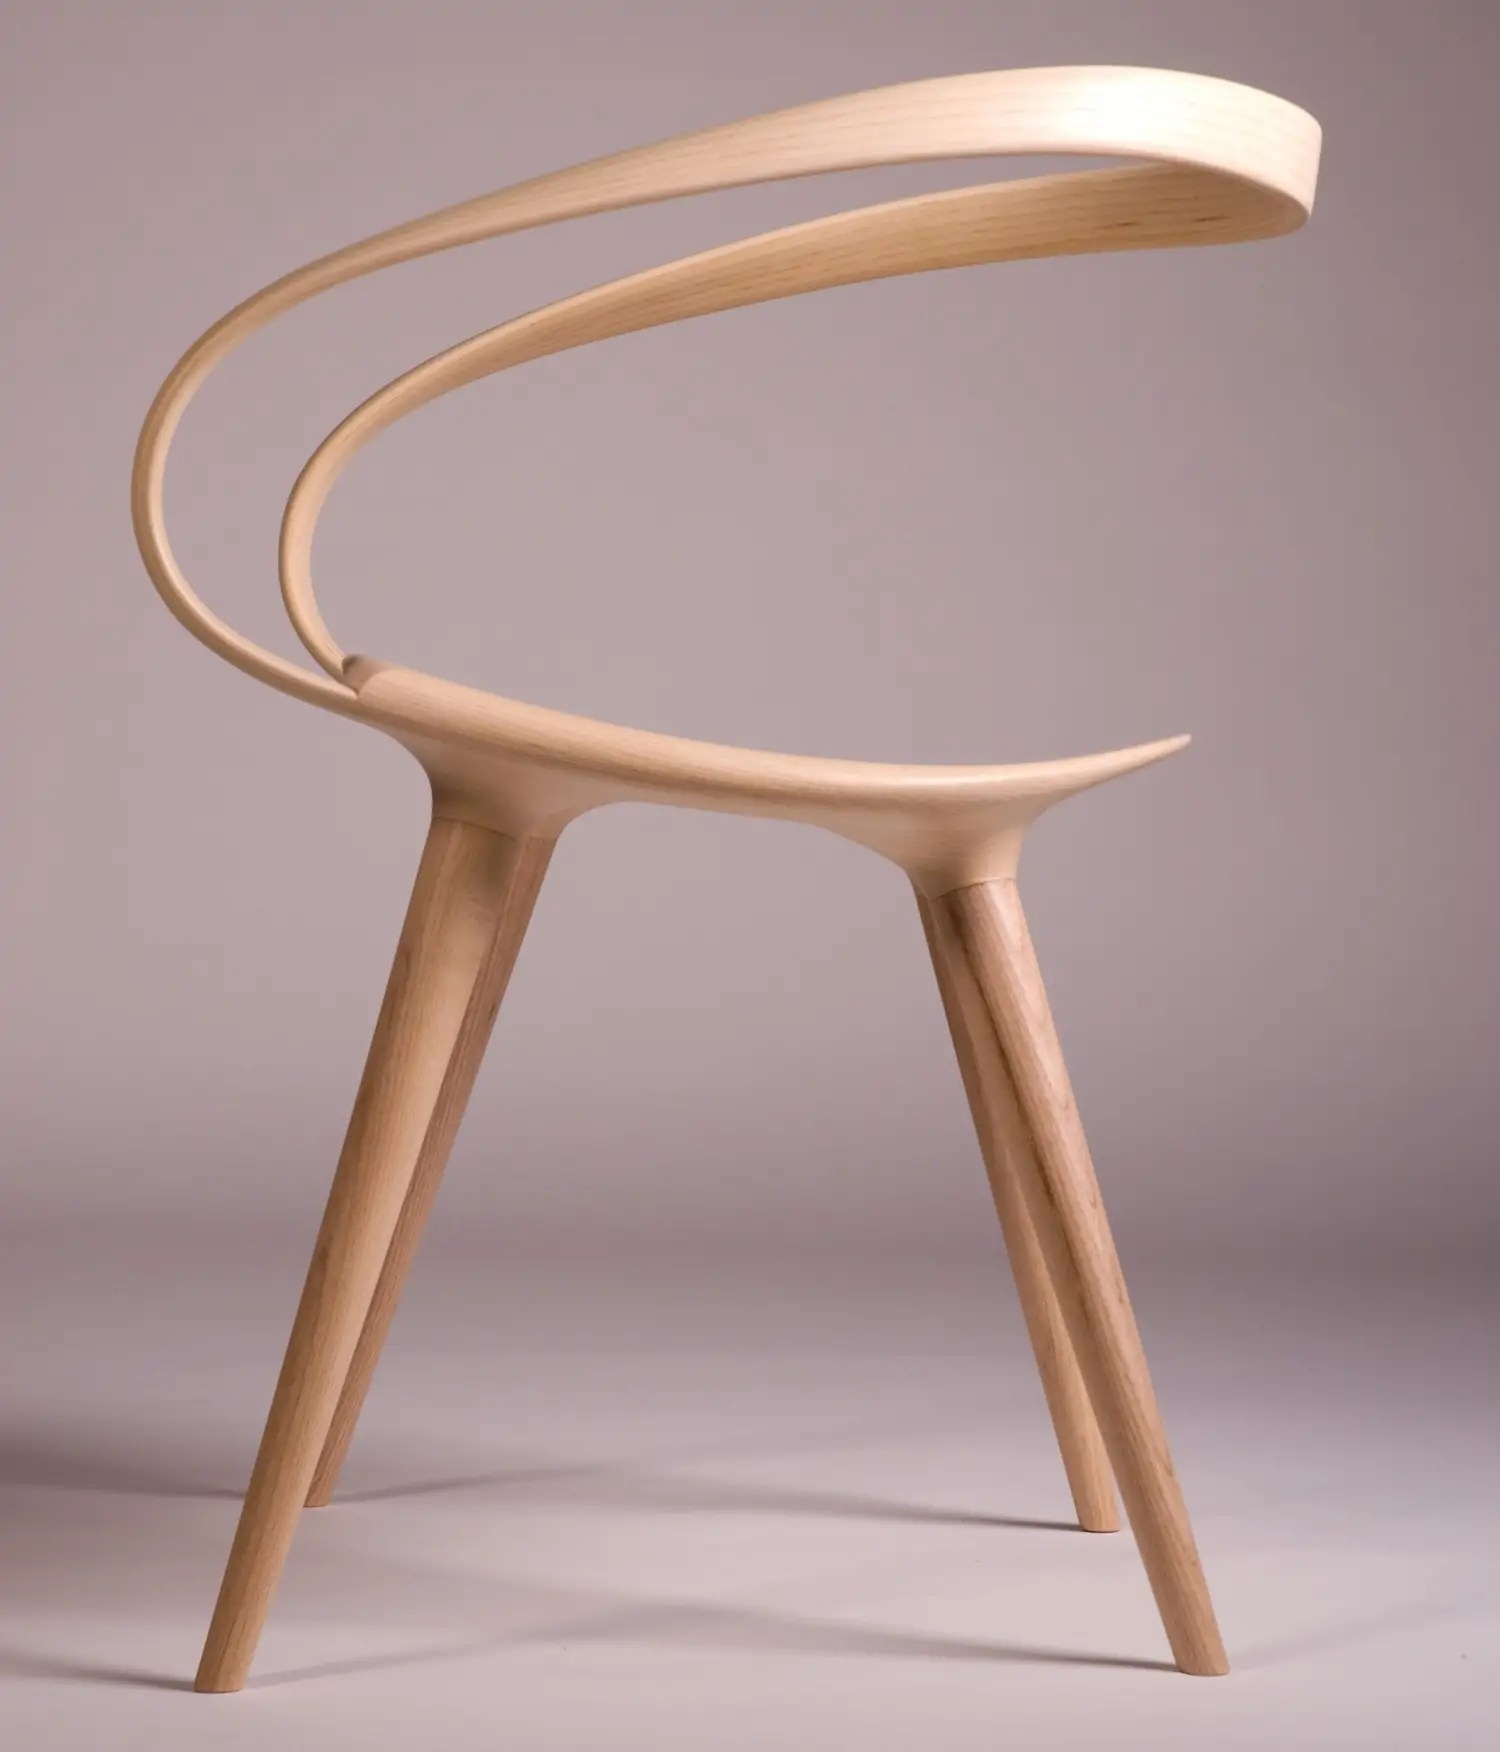 Genial Made From Ash, The Unique And Modern Take On Bent Plywood Has  Unsurprisingly Earned Waterston Some Much Deserved Attention. This Week The  Chair Was ...